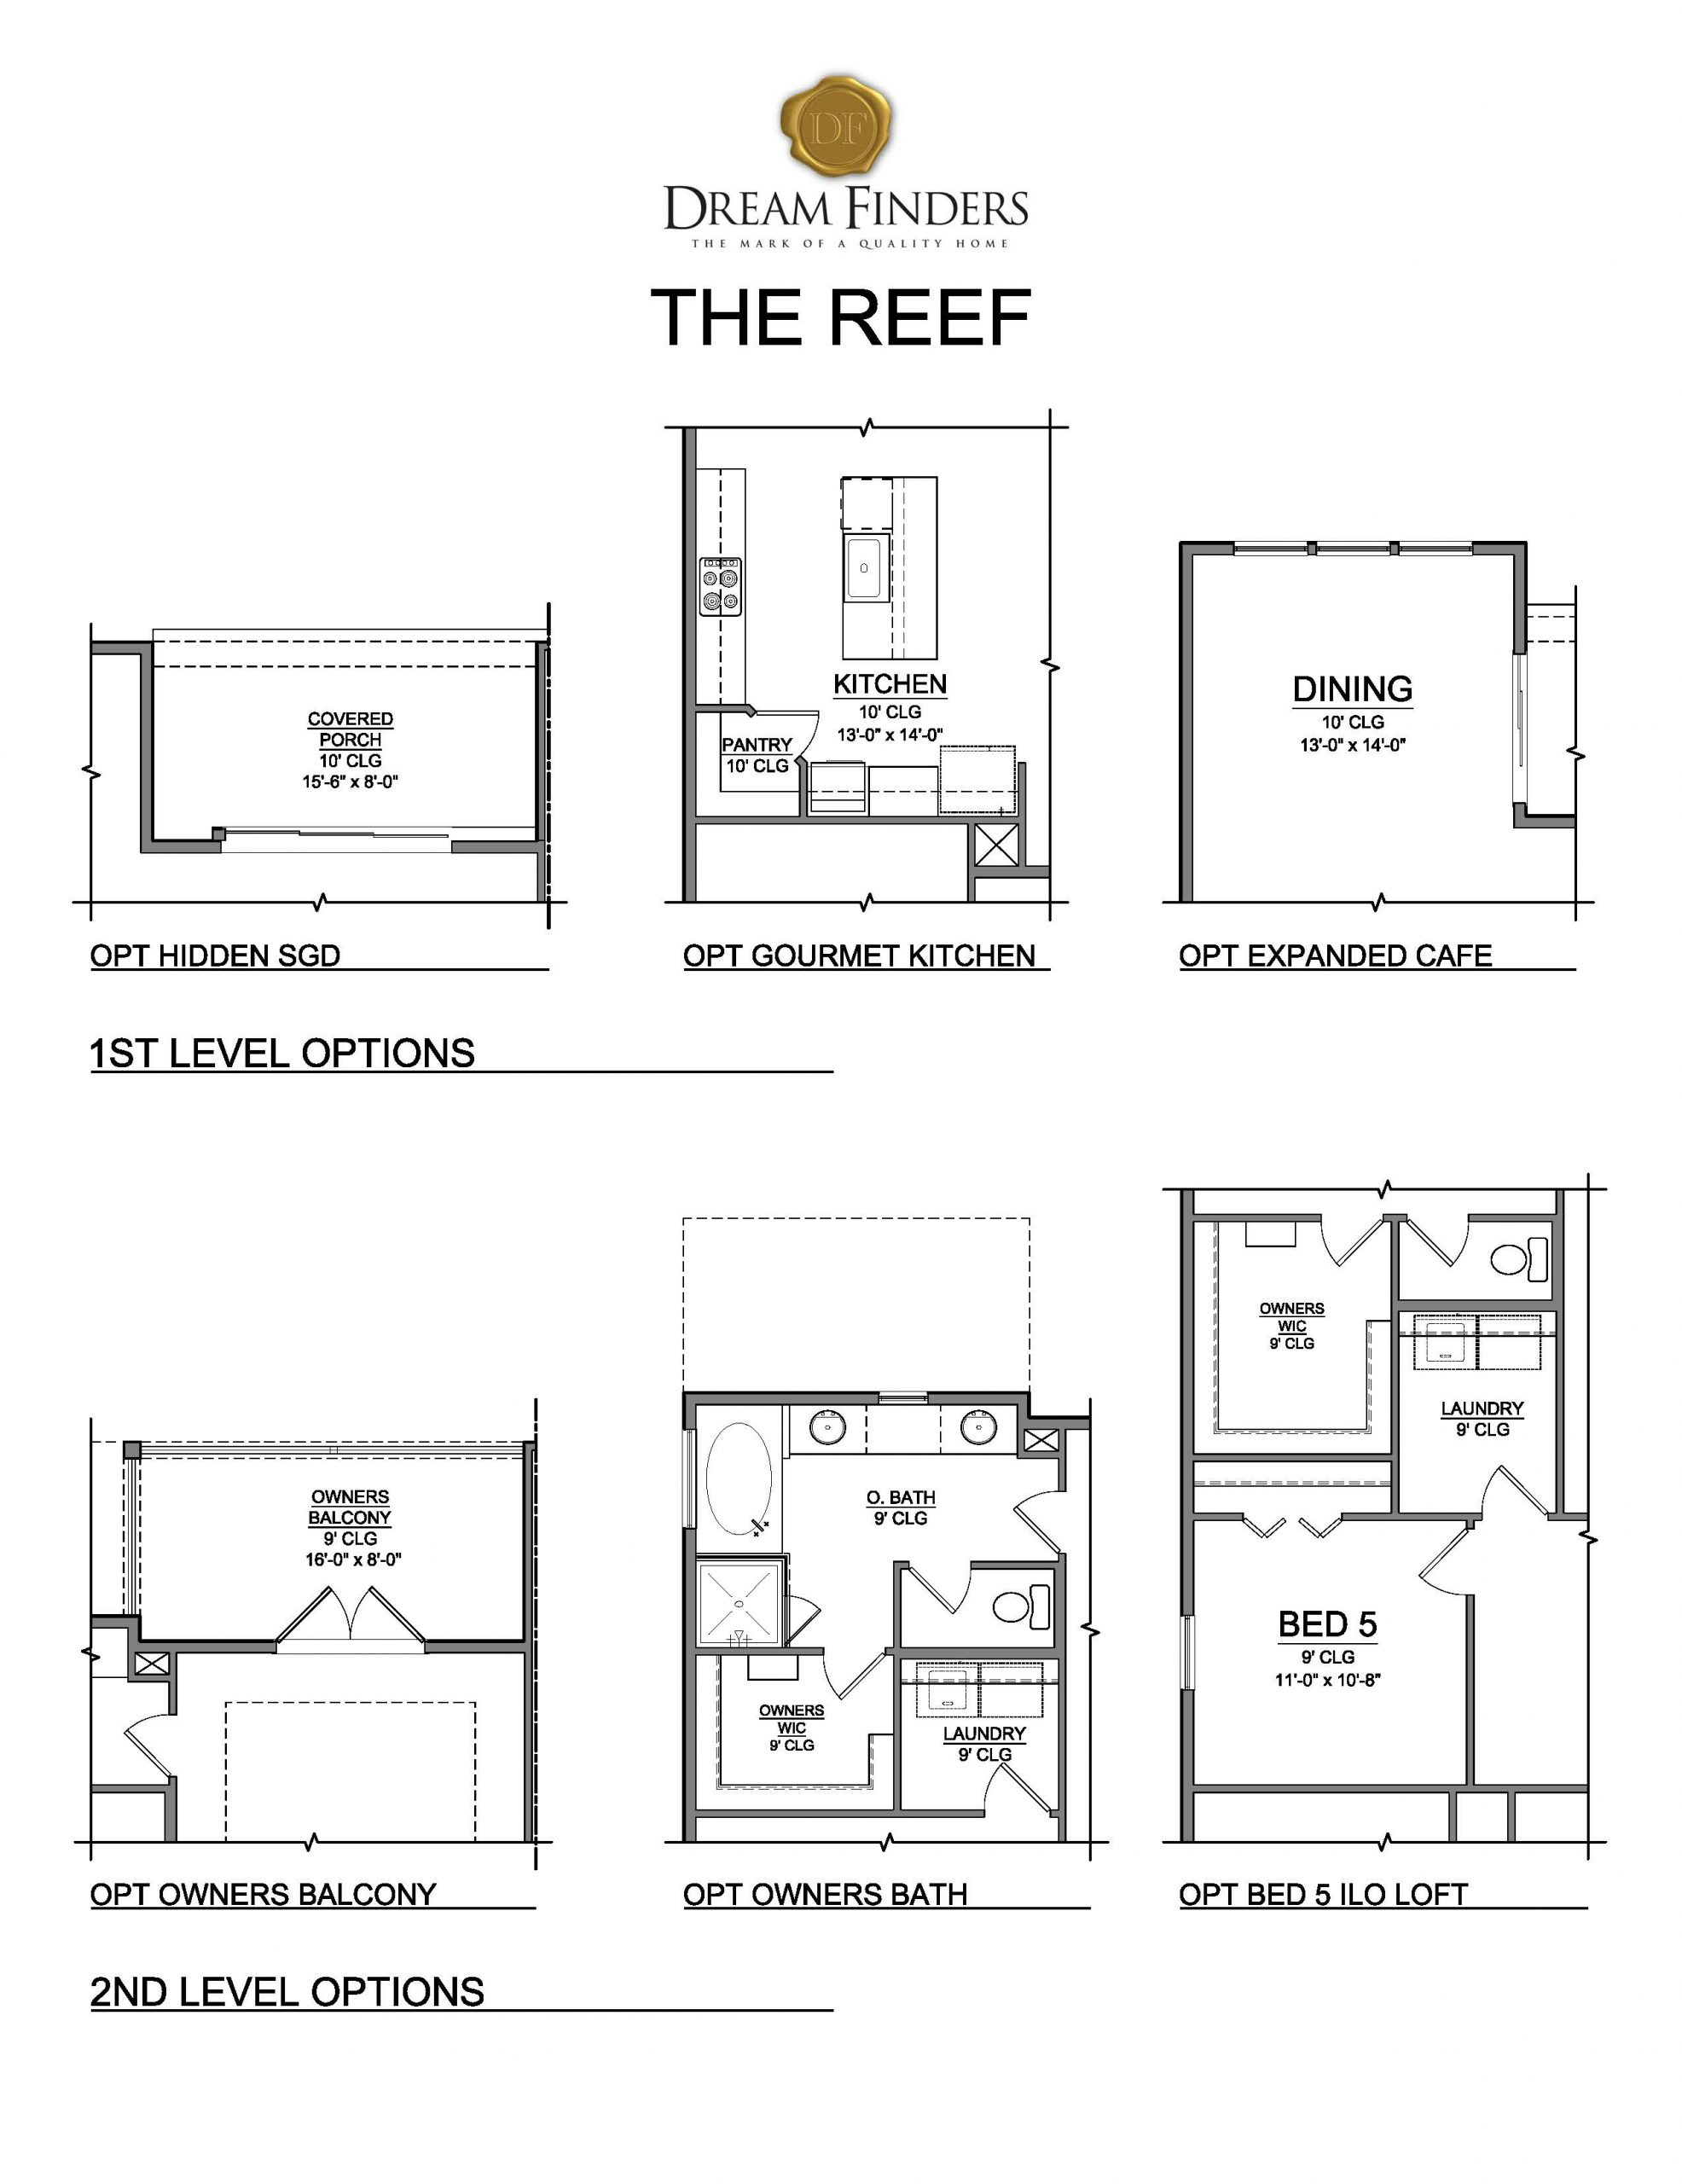 The Reef Brochure Revised 08 02 21 Page 3